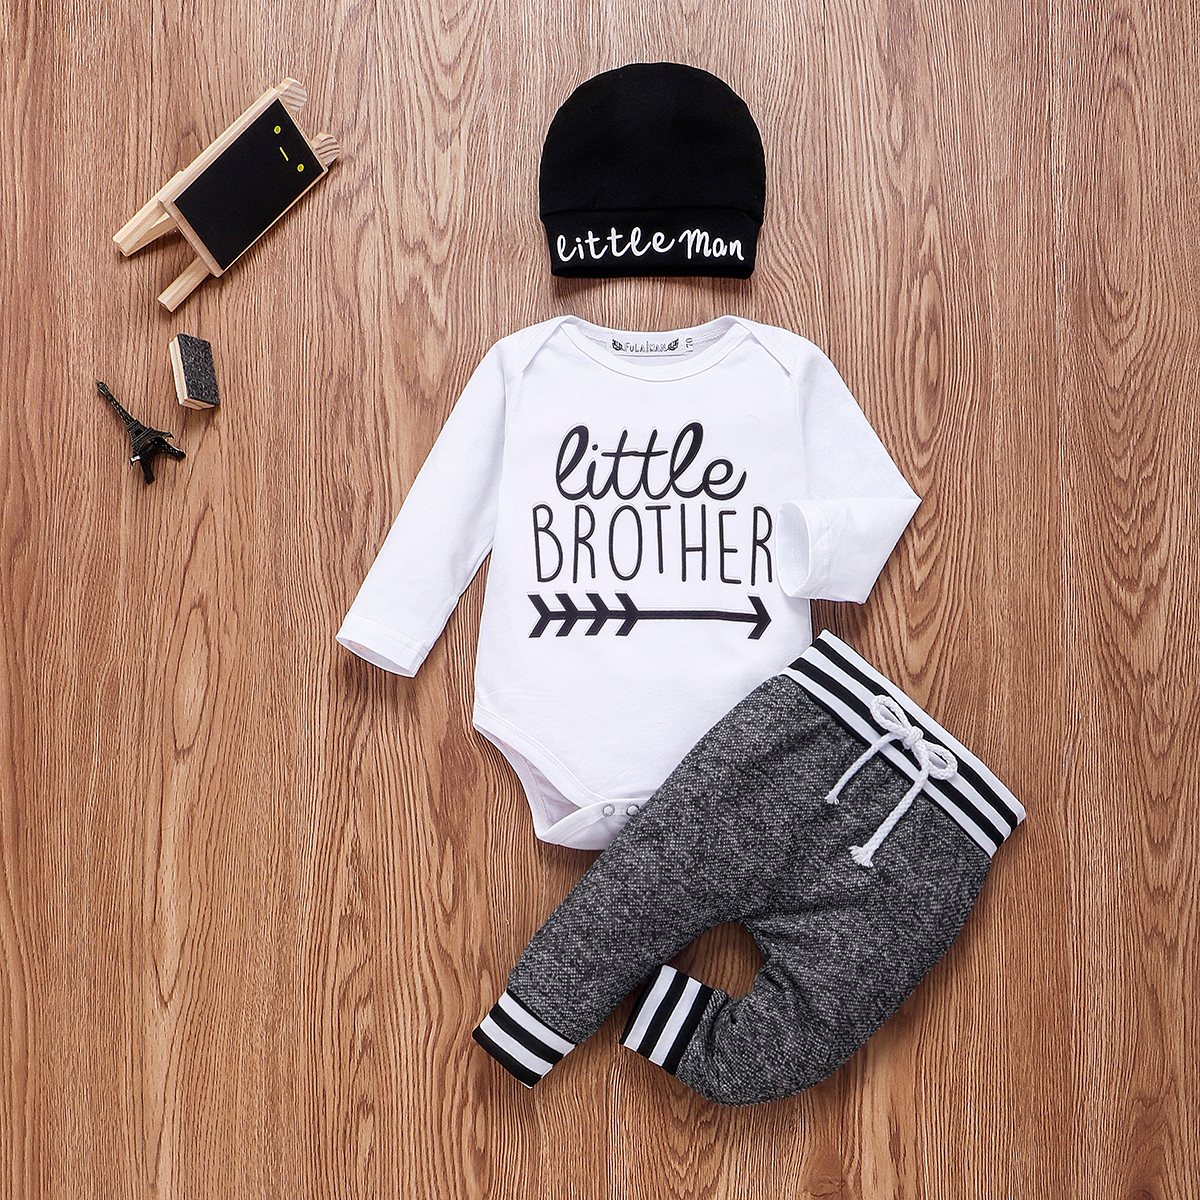 0 18Months Newborn Infant Baby Boy Clothes Cotton Sets Long Sleeve Romper Pant Hats Outfit 3Pcs Baby Warm Clothing